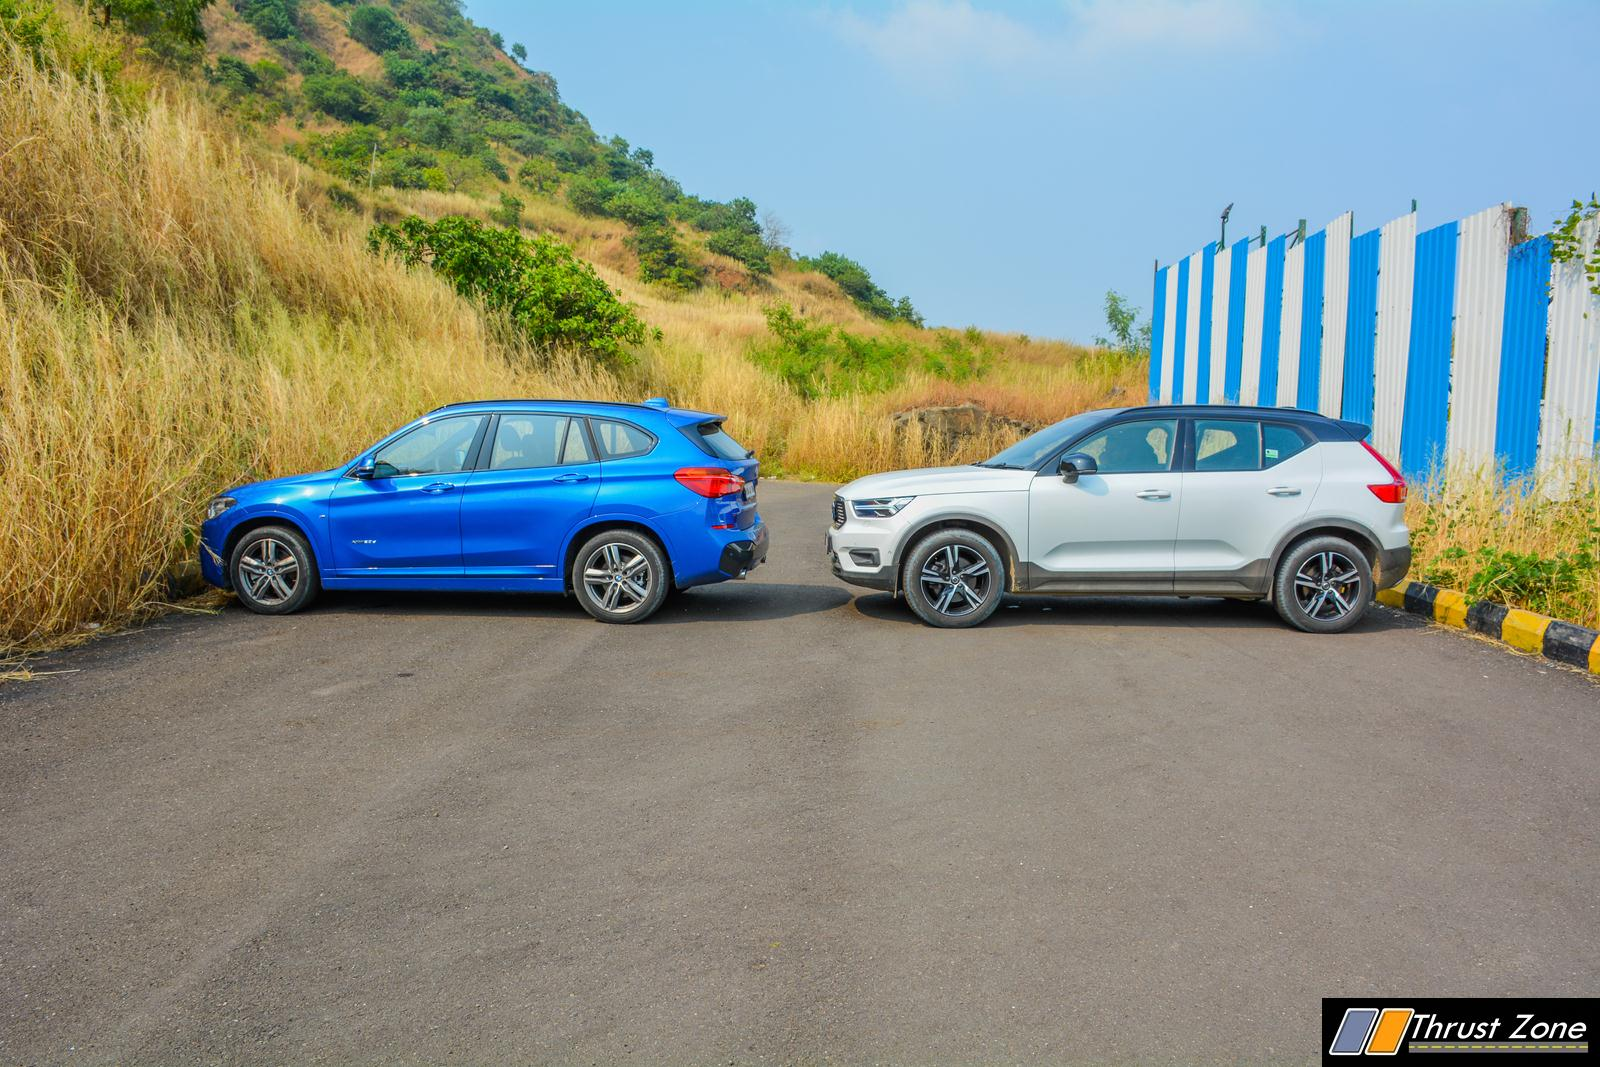 https://www.thrustzone.com/wp-content/uploads/2018/11/BMW-X1-vs-Volvo-XC40-Diesel-Comparison-Review-Shootout-16.jpg